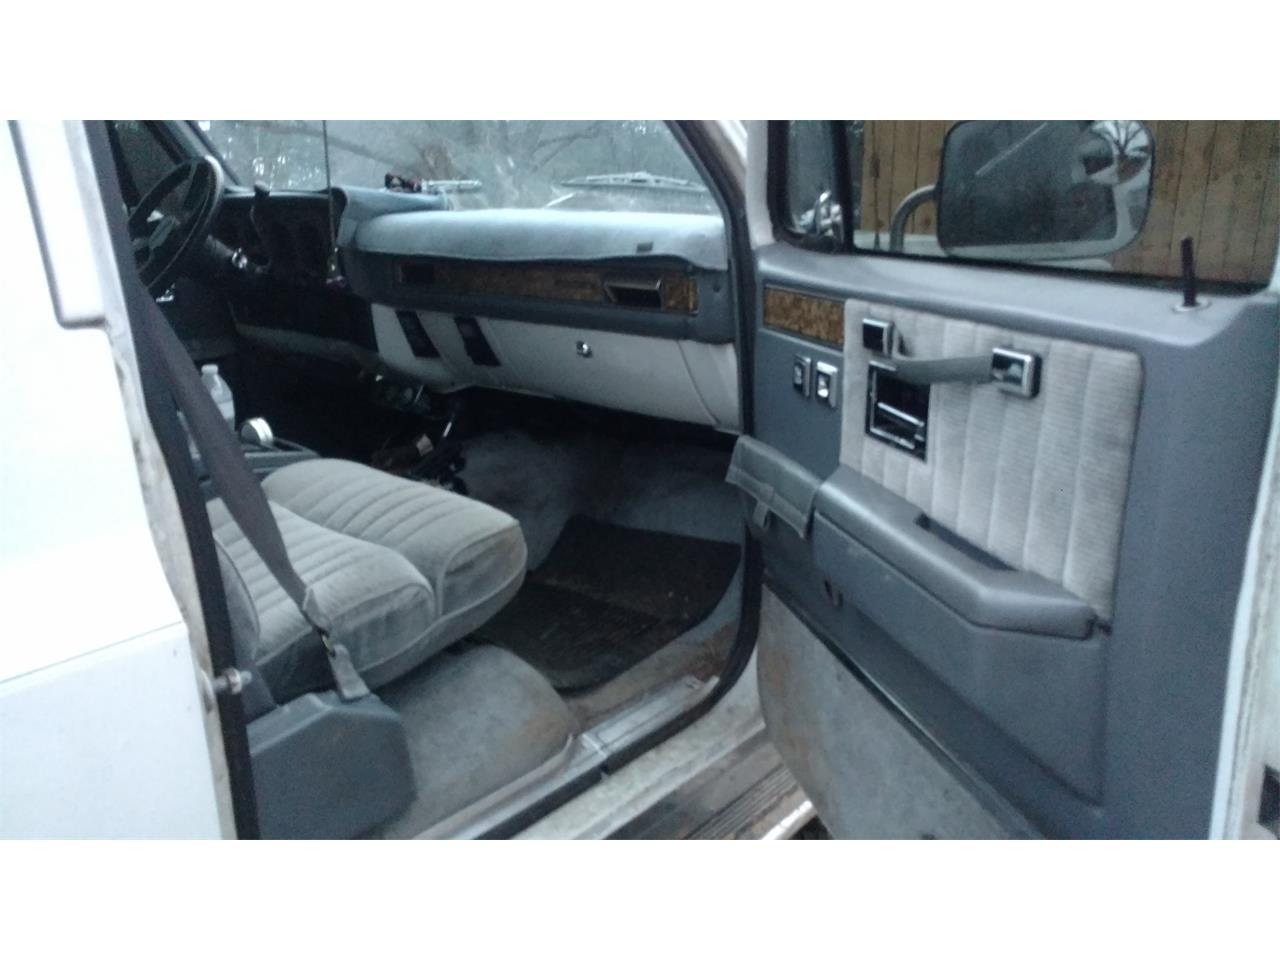 Large Picture of 1990 Chevrolet Suburban located in South Carolina Offered by a Private Seller - LE6H